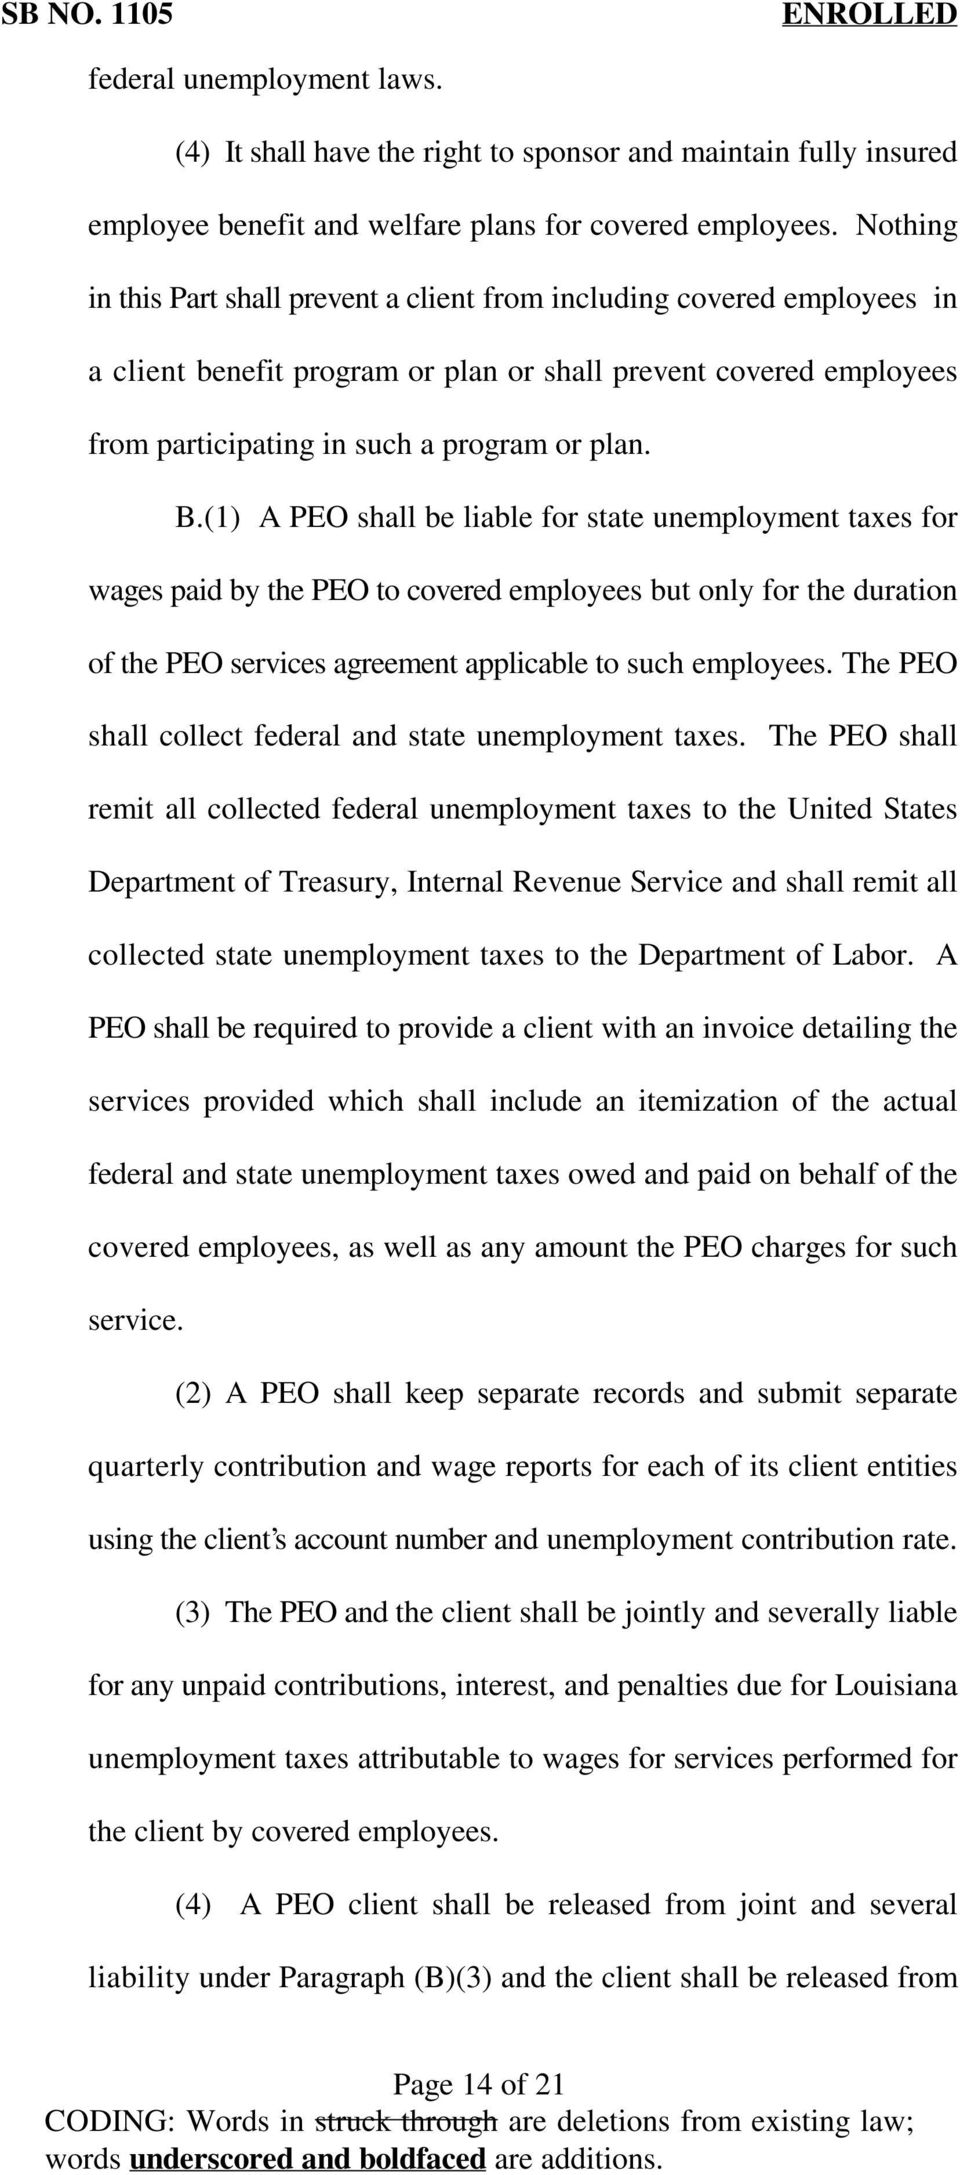 (1) A PEO shall be liable for state unemployment taxes for wages paid by the PEO to covered employees but only for the duration of the PEO services agreement applicable to such employees.